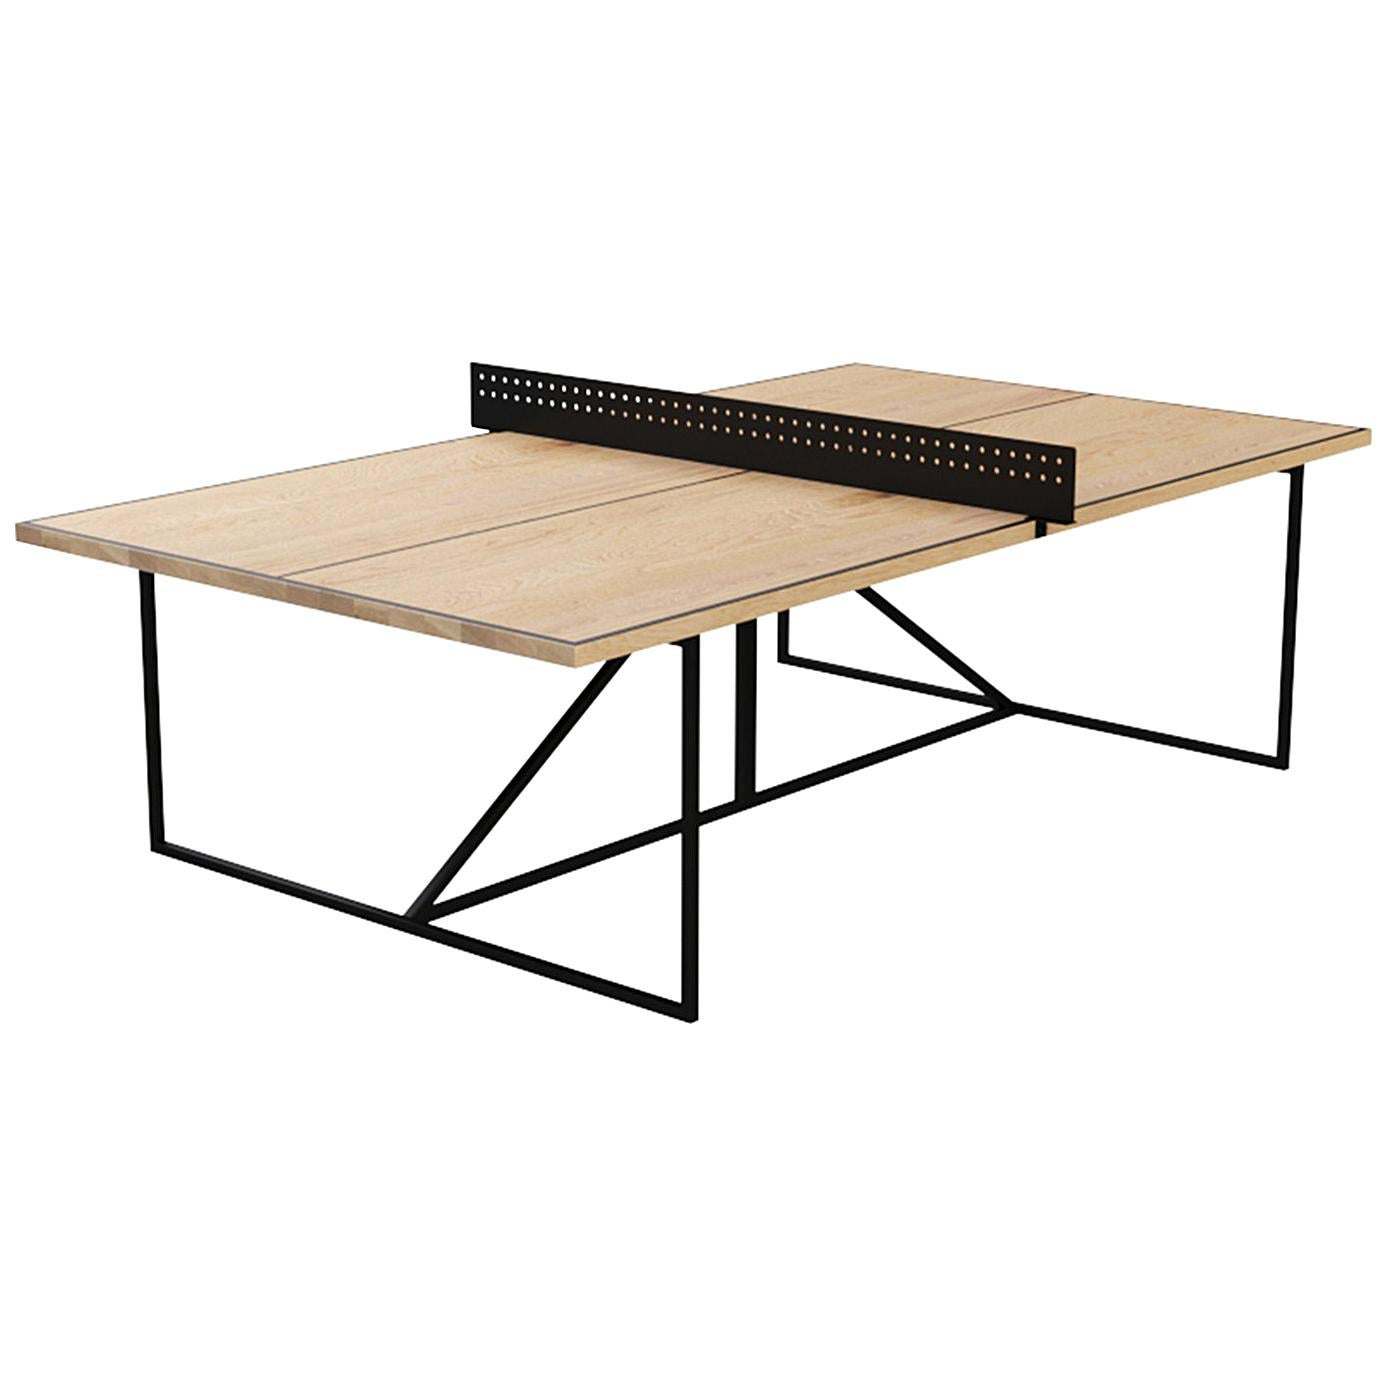 Excellent James De Wulf Customizable Concrete Ping Pong Table Download Free Architecture Designs Aeocymadebymaigaardcom